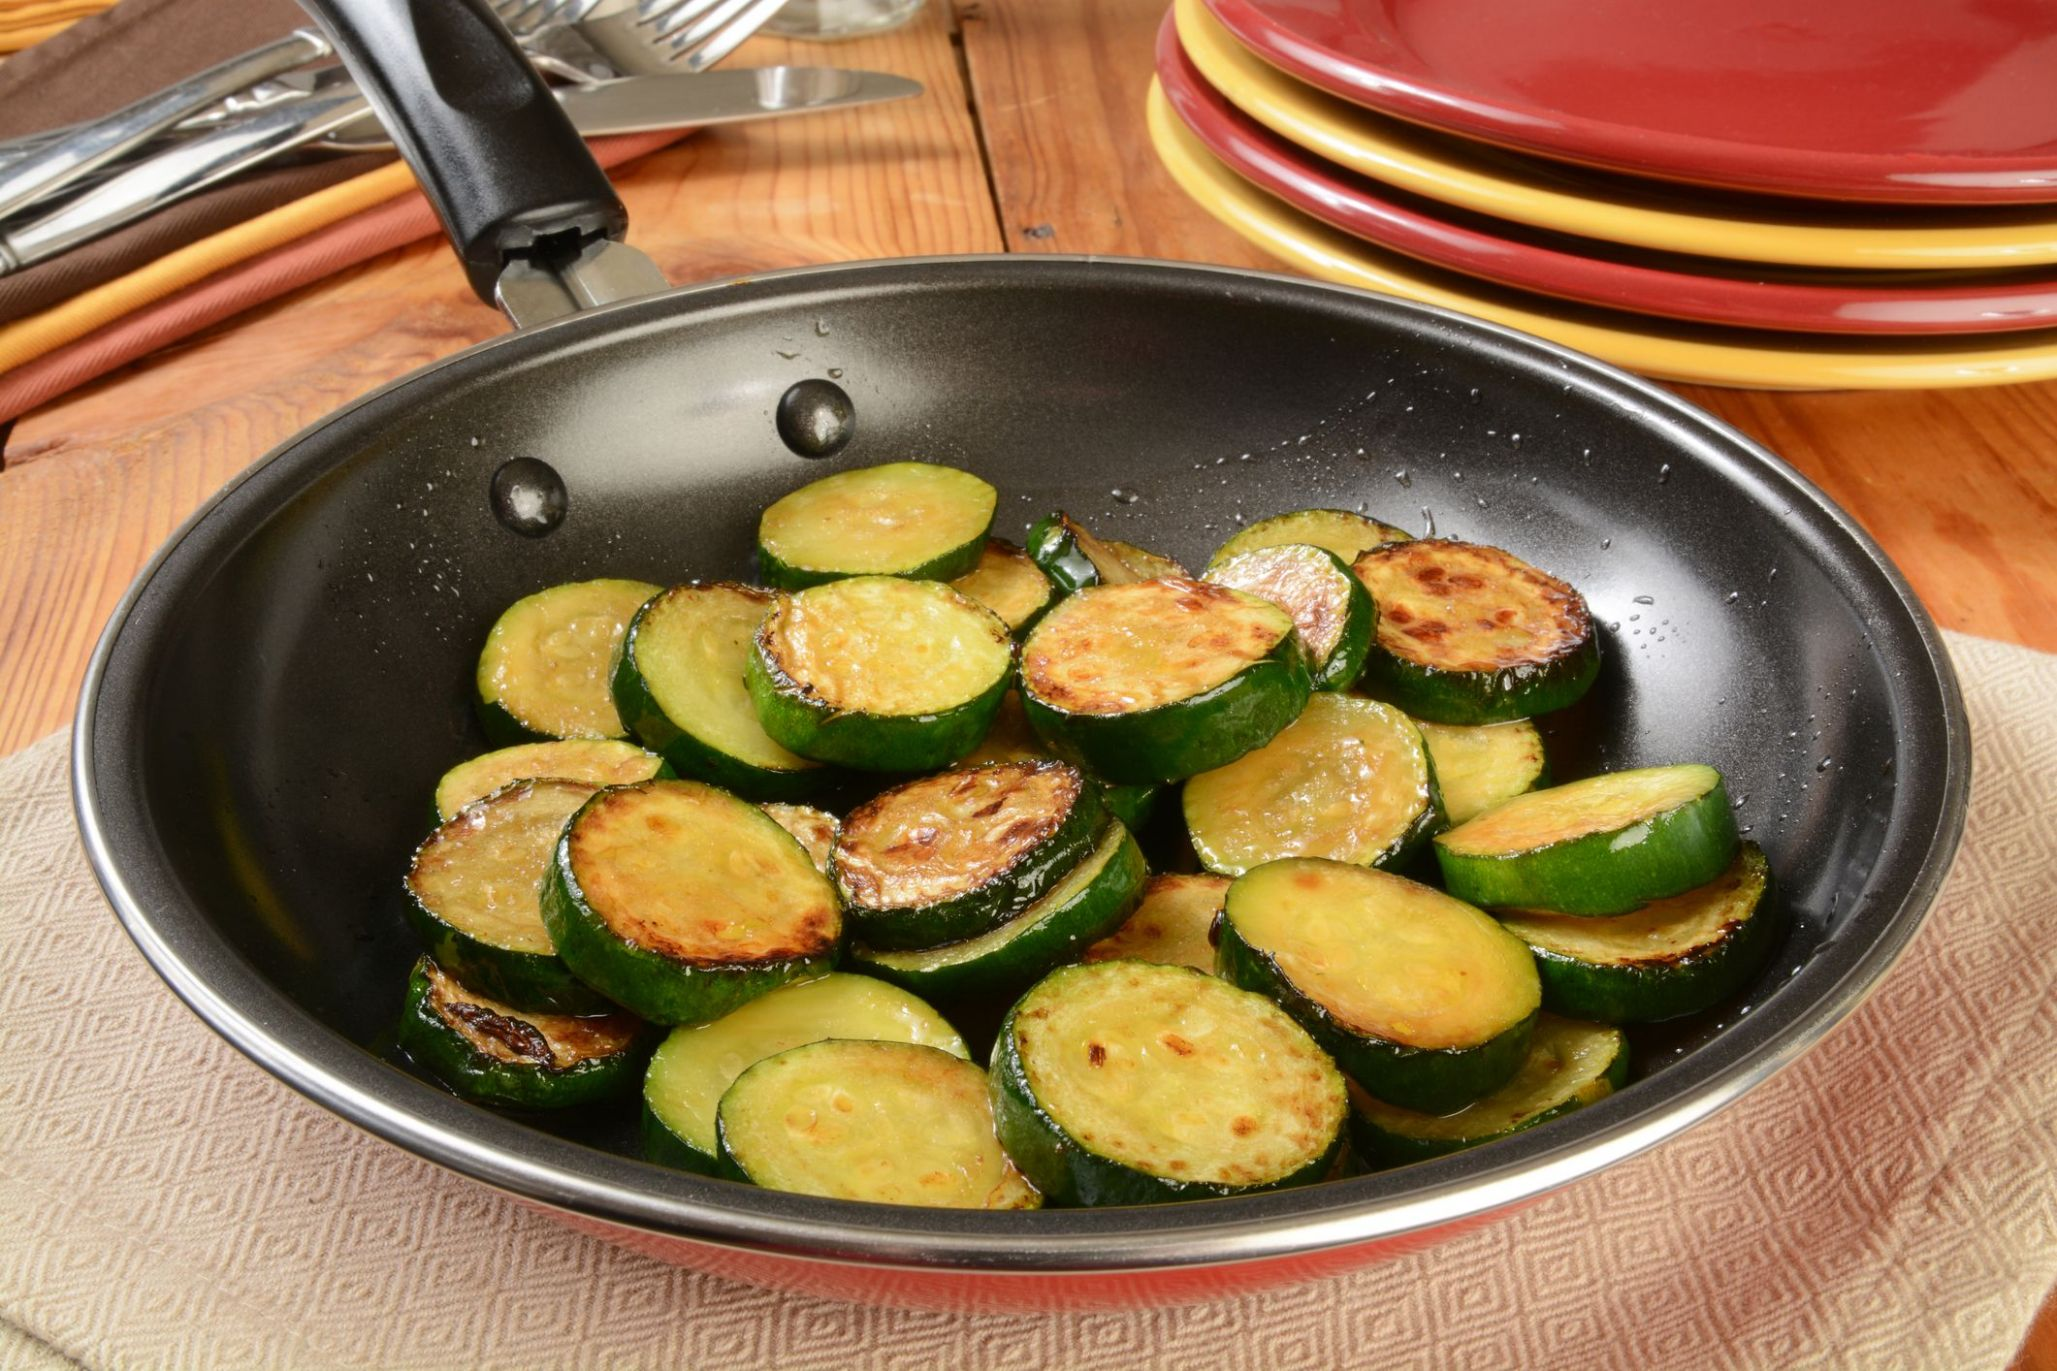 Sautéed Zucchini - Recipes For Cooking Zucchini